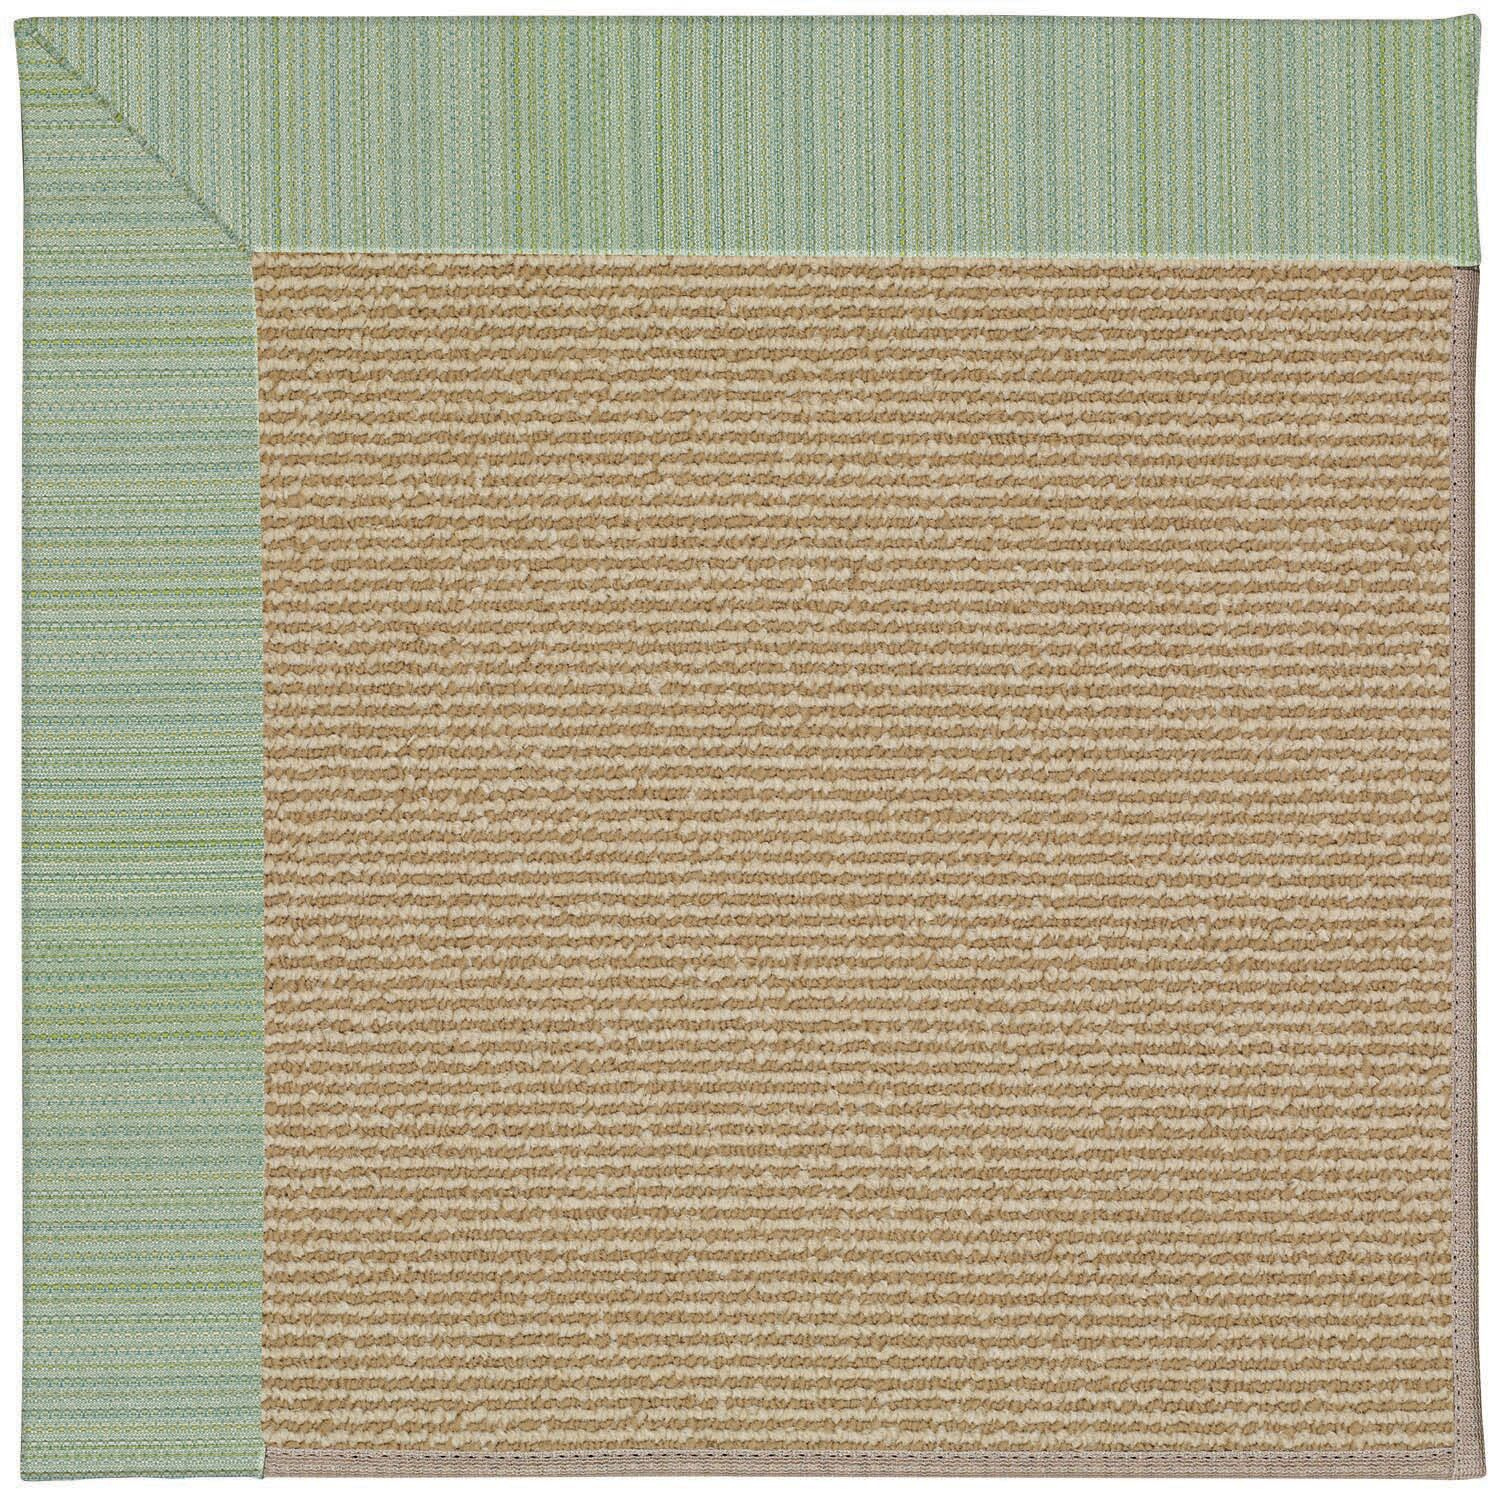 Lisle Machine Tufted Green Spa and Beige Indoor/Outdoor Area Rug Rug Size: Rectangle 10' x 14'